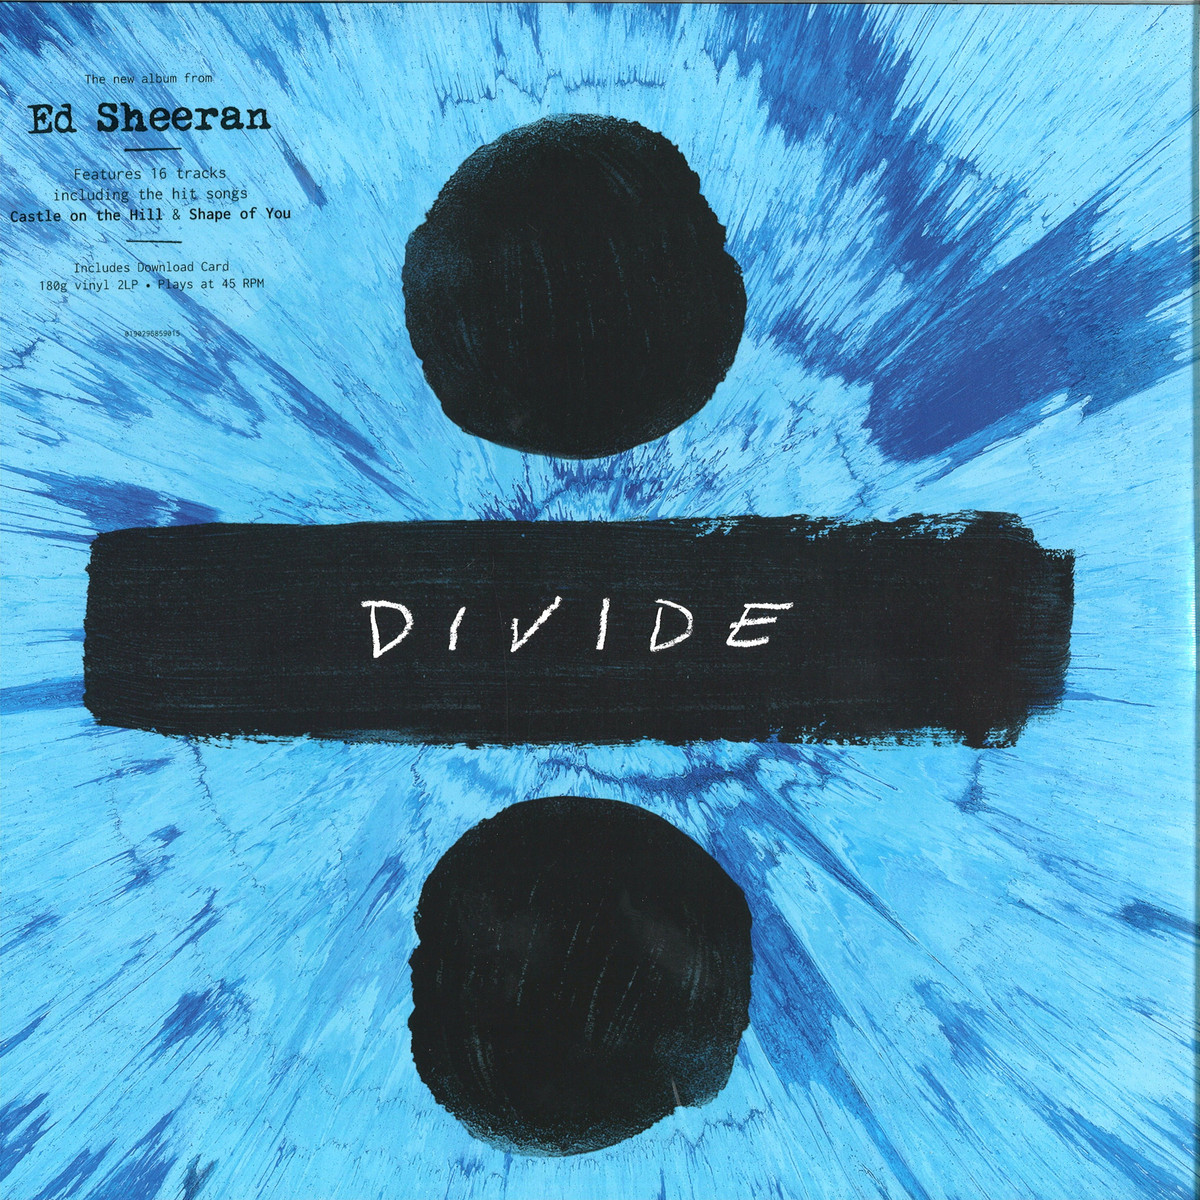 Ed Sheeran Divide Warner 0190295859015 Vinyl